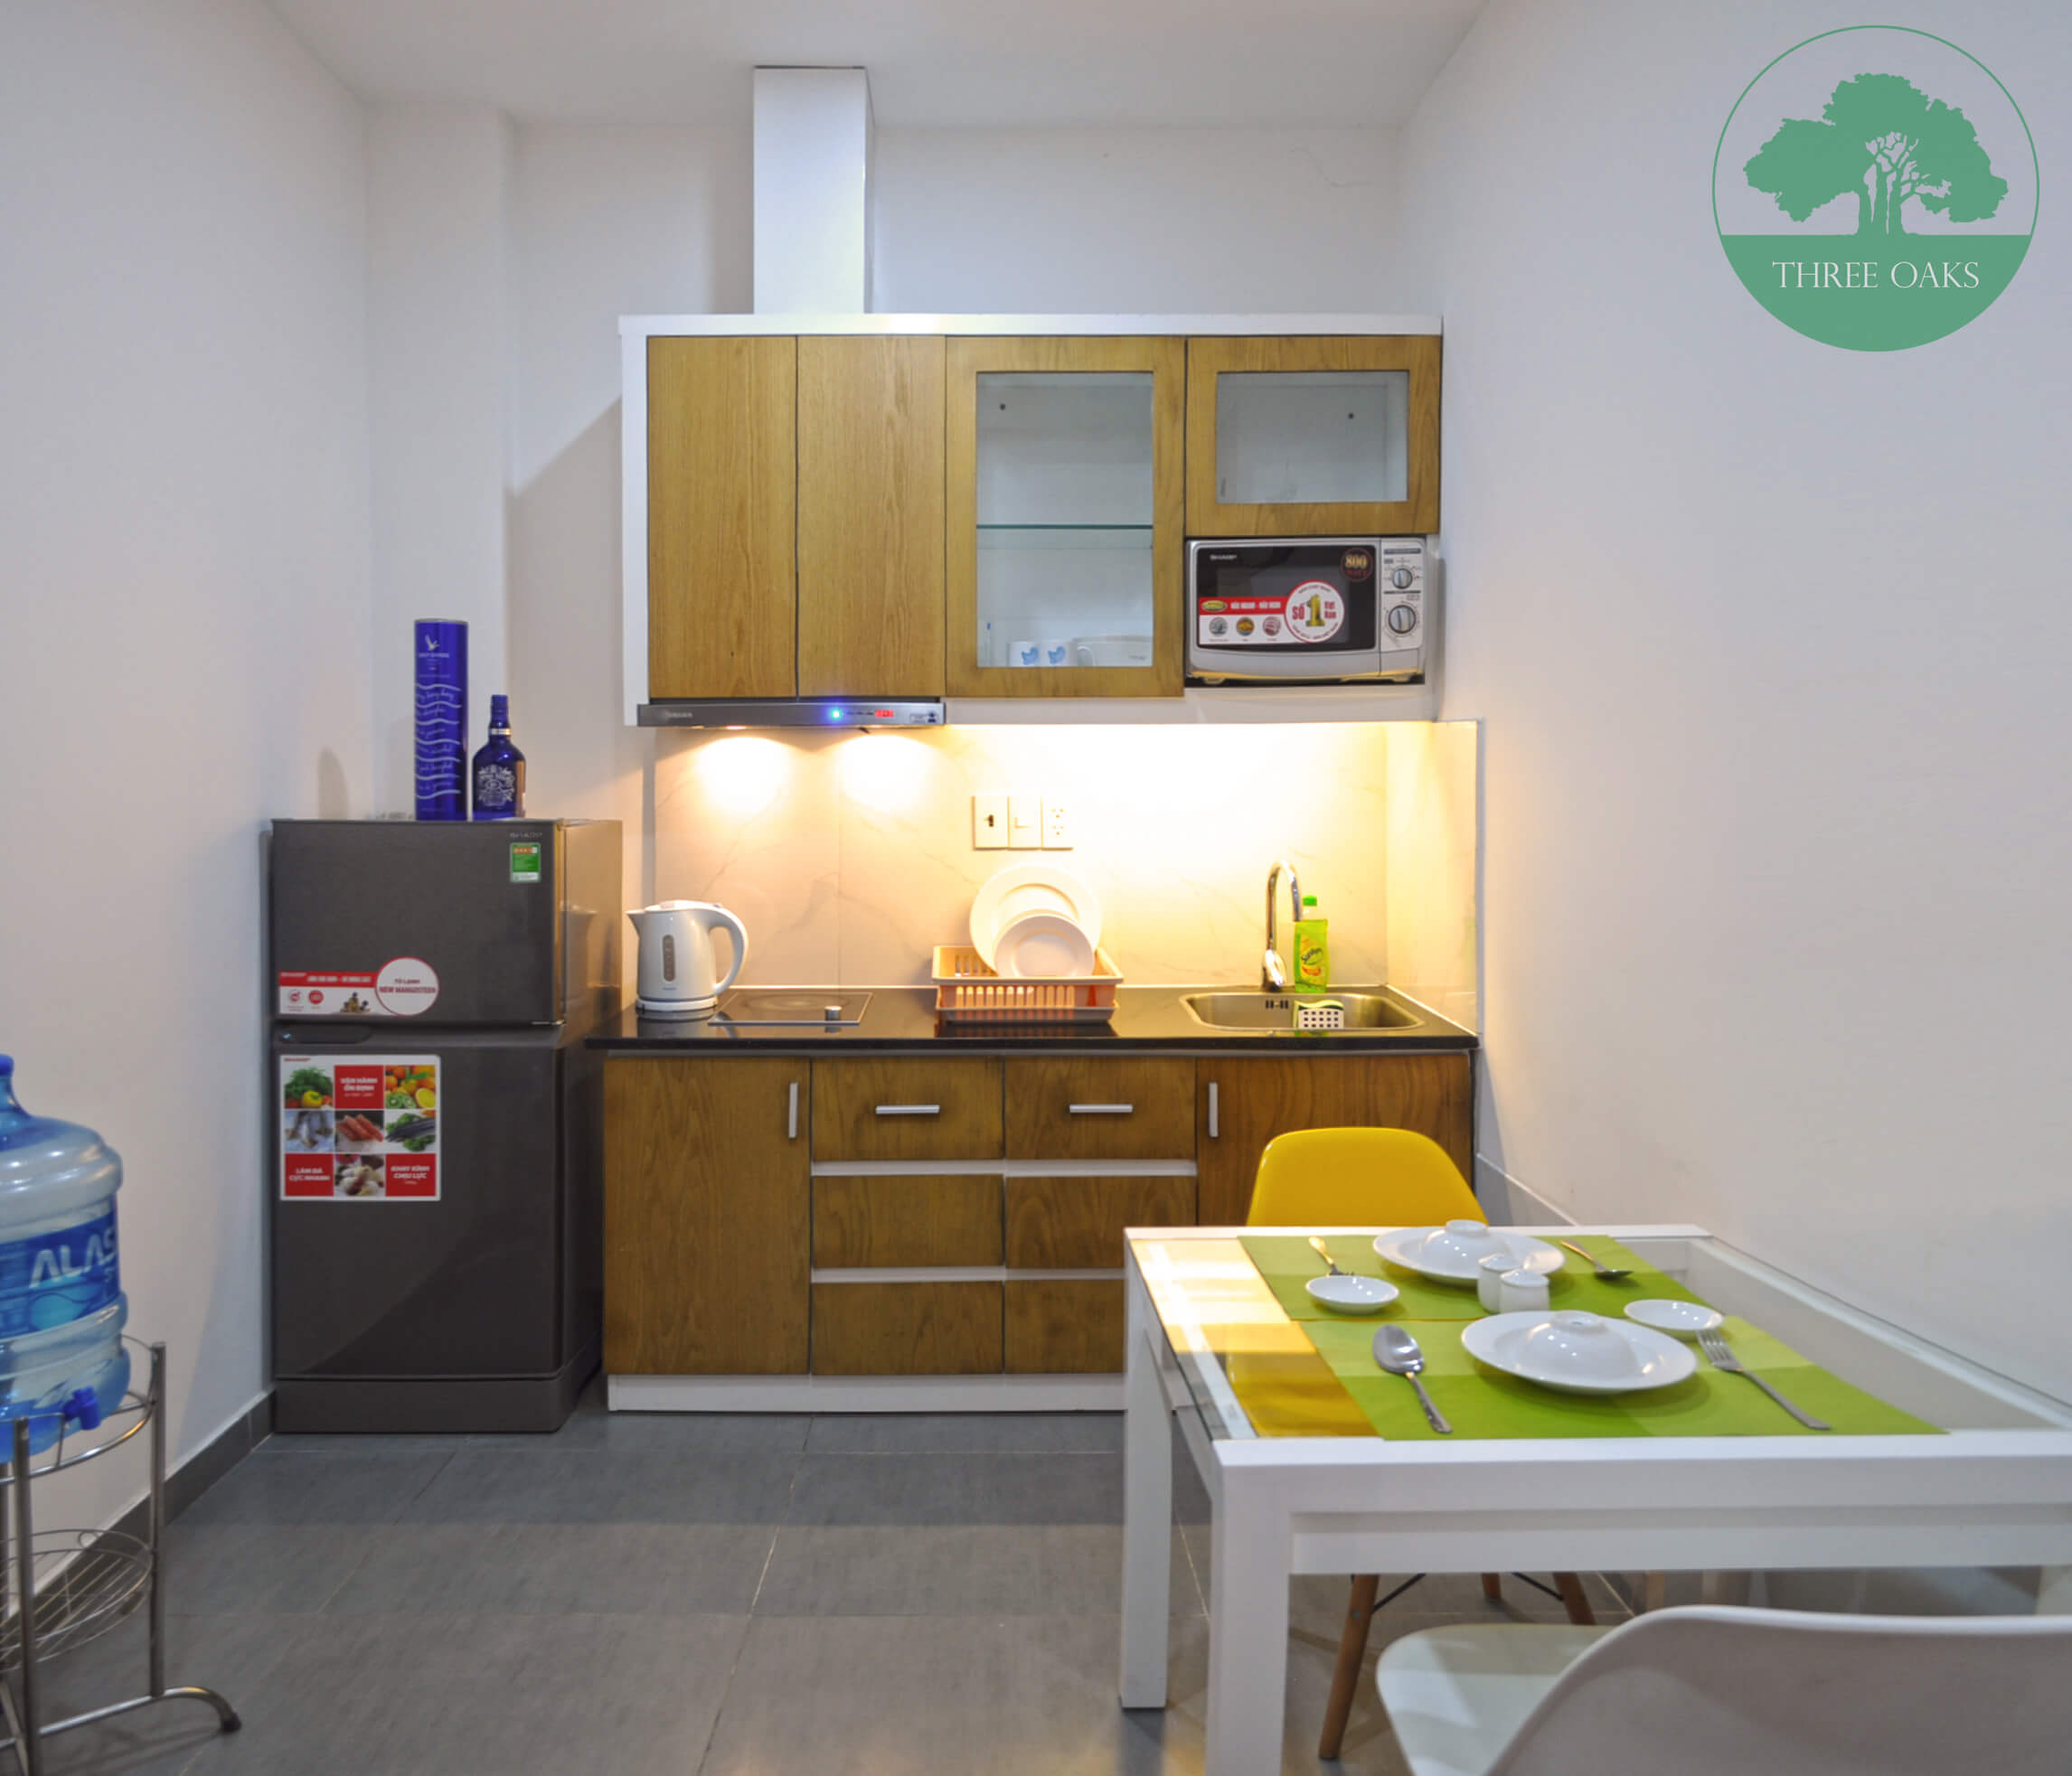 serviced-aparment-room-for-rent-saigon-One-bedroom-with-Small-backyard-9